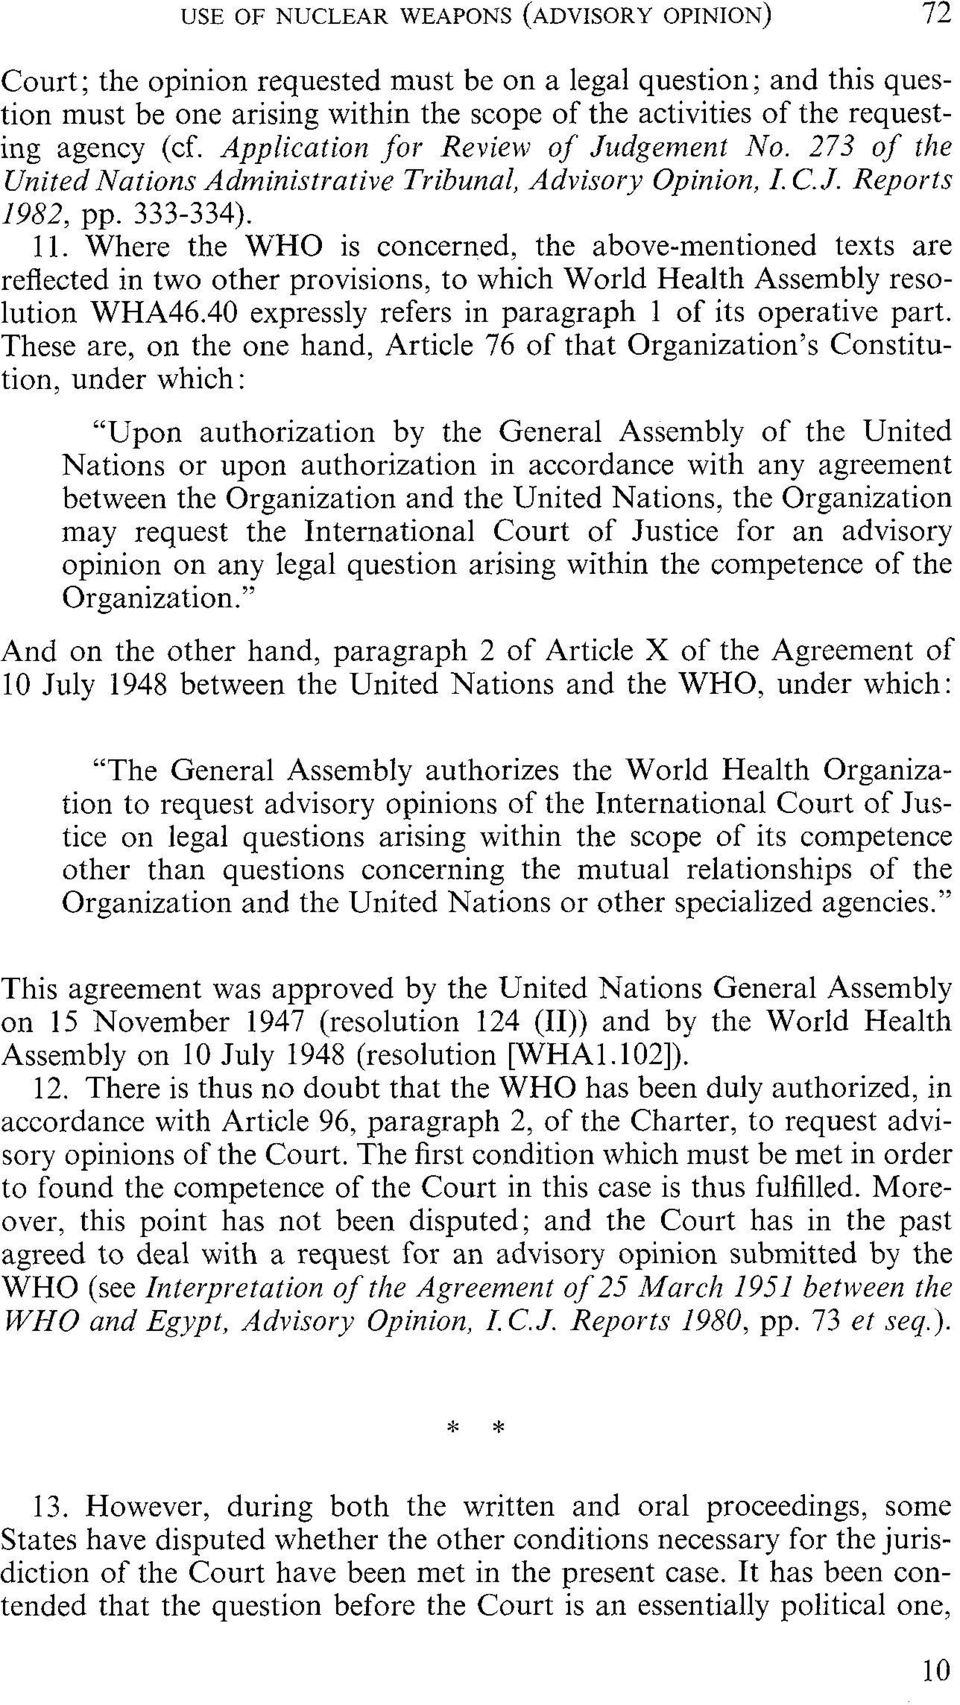 Where the WHO is concerned, the above-mentioned texts are reflected in two other provisions, to which World Health Assembly resolution WHA46.40 expressly refers in paragraph 1 of its operative part.